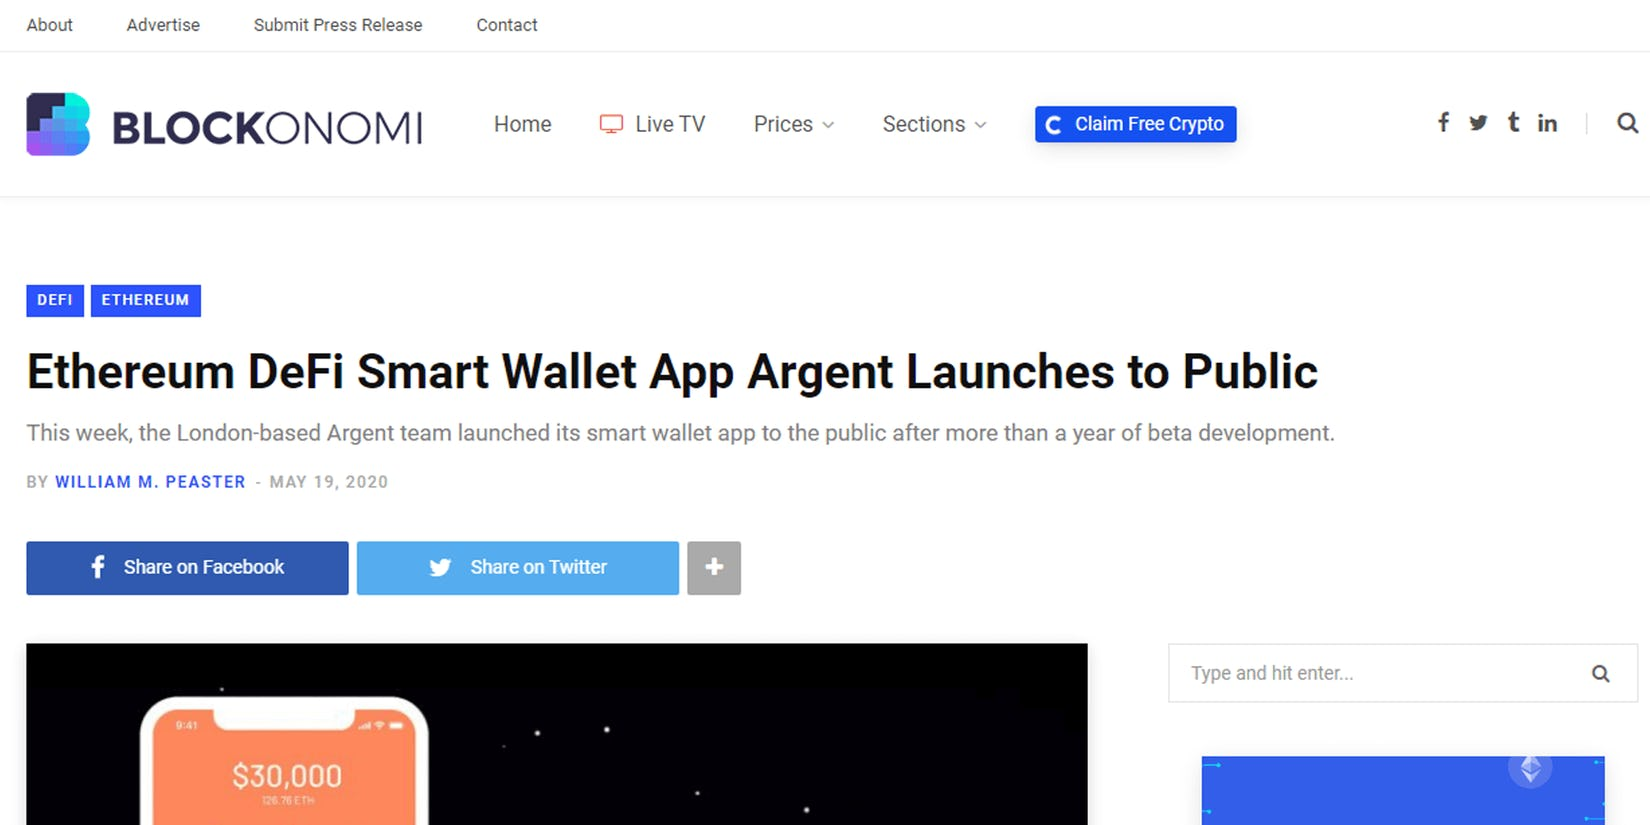 Blockonomi: Ethereum DeFi Smart Wallet App Argent Launches to Public